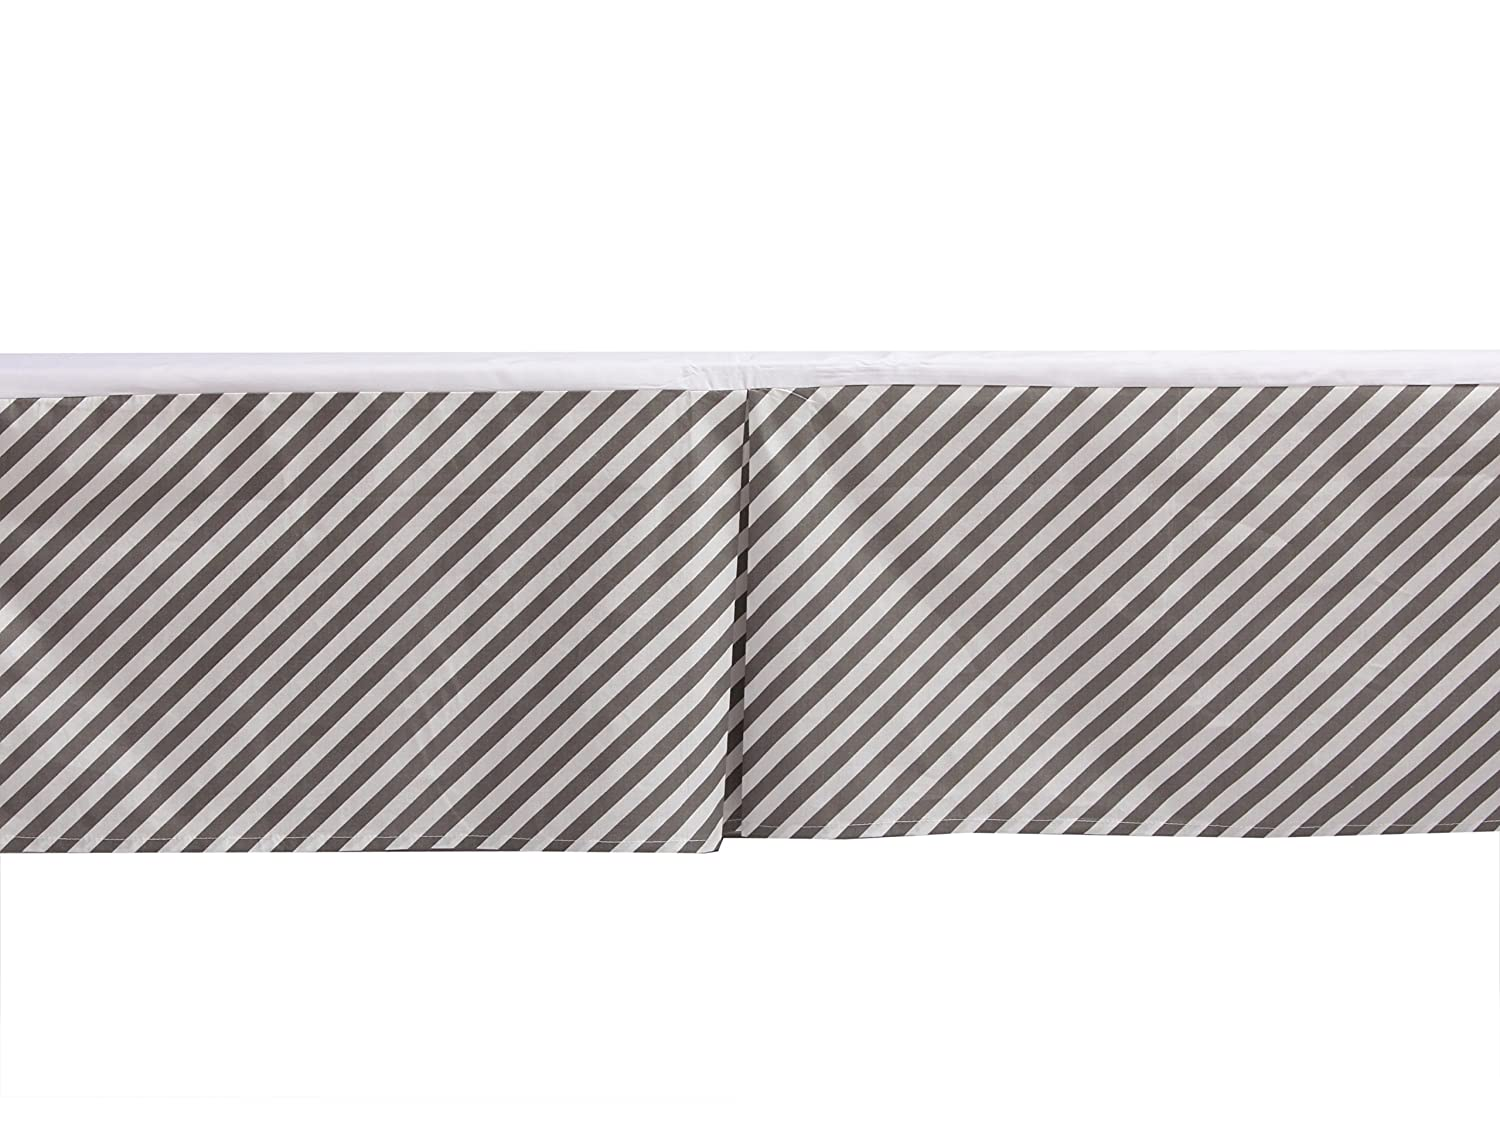 Bacati Love Warp Stripes Crib//Toddler Bed Skirt 13 Black//White